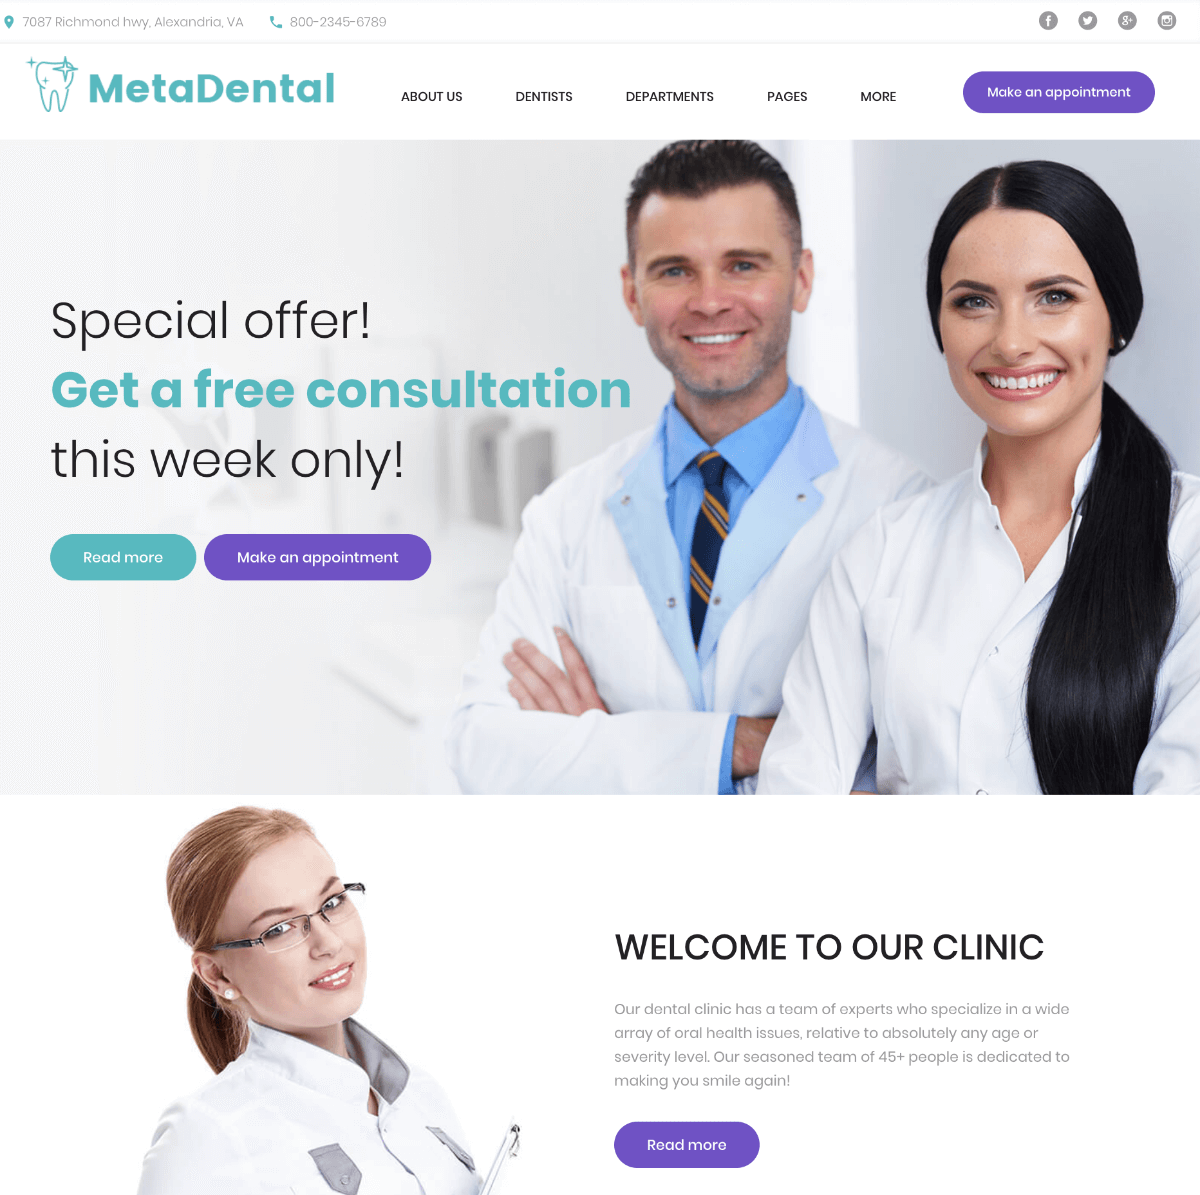 MetaDental private dental clinic responsive WordPress theme